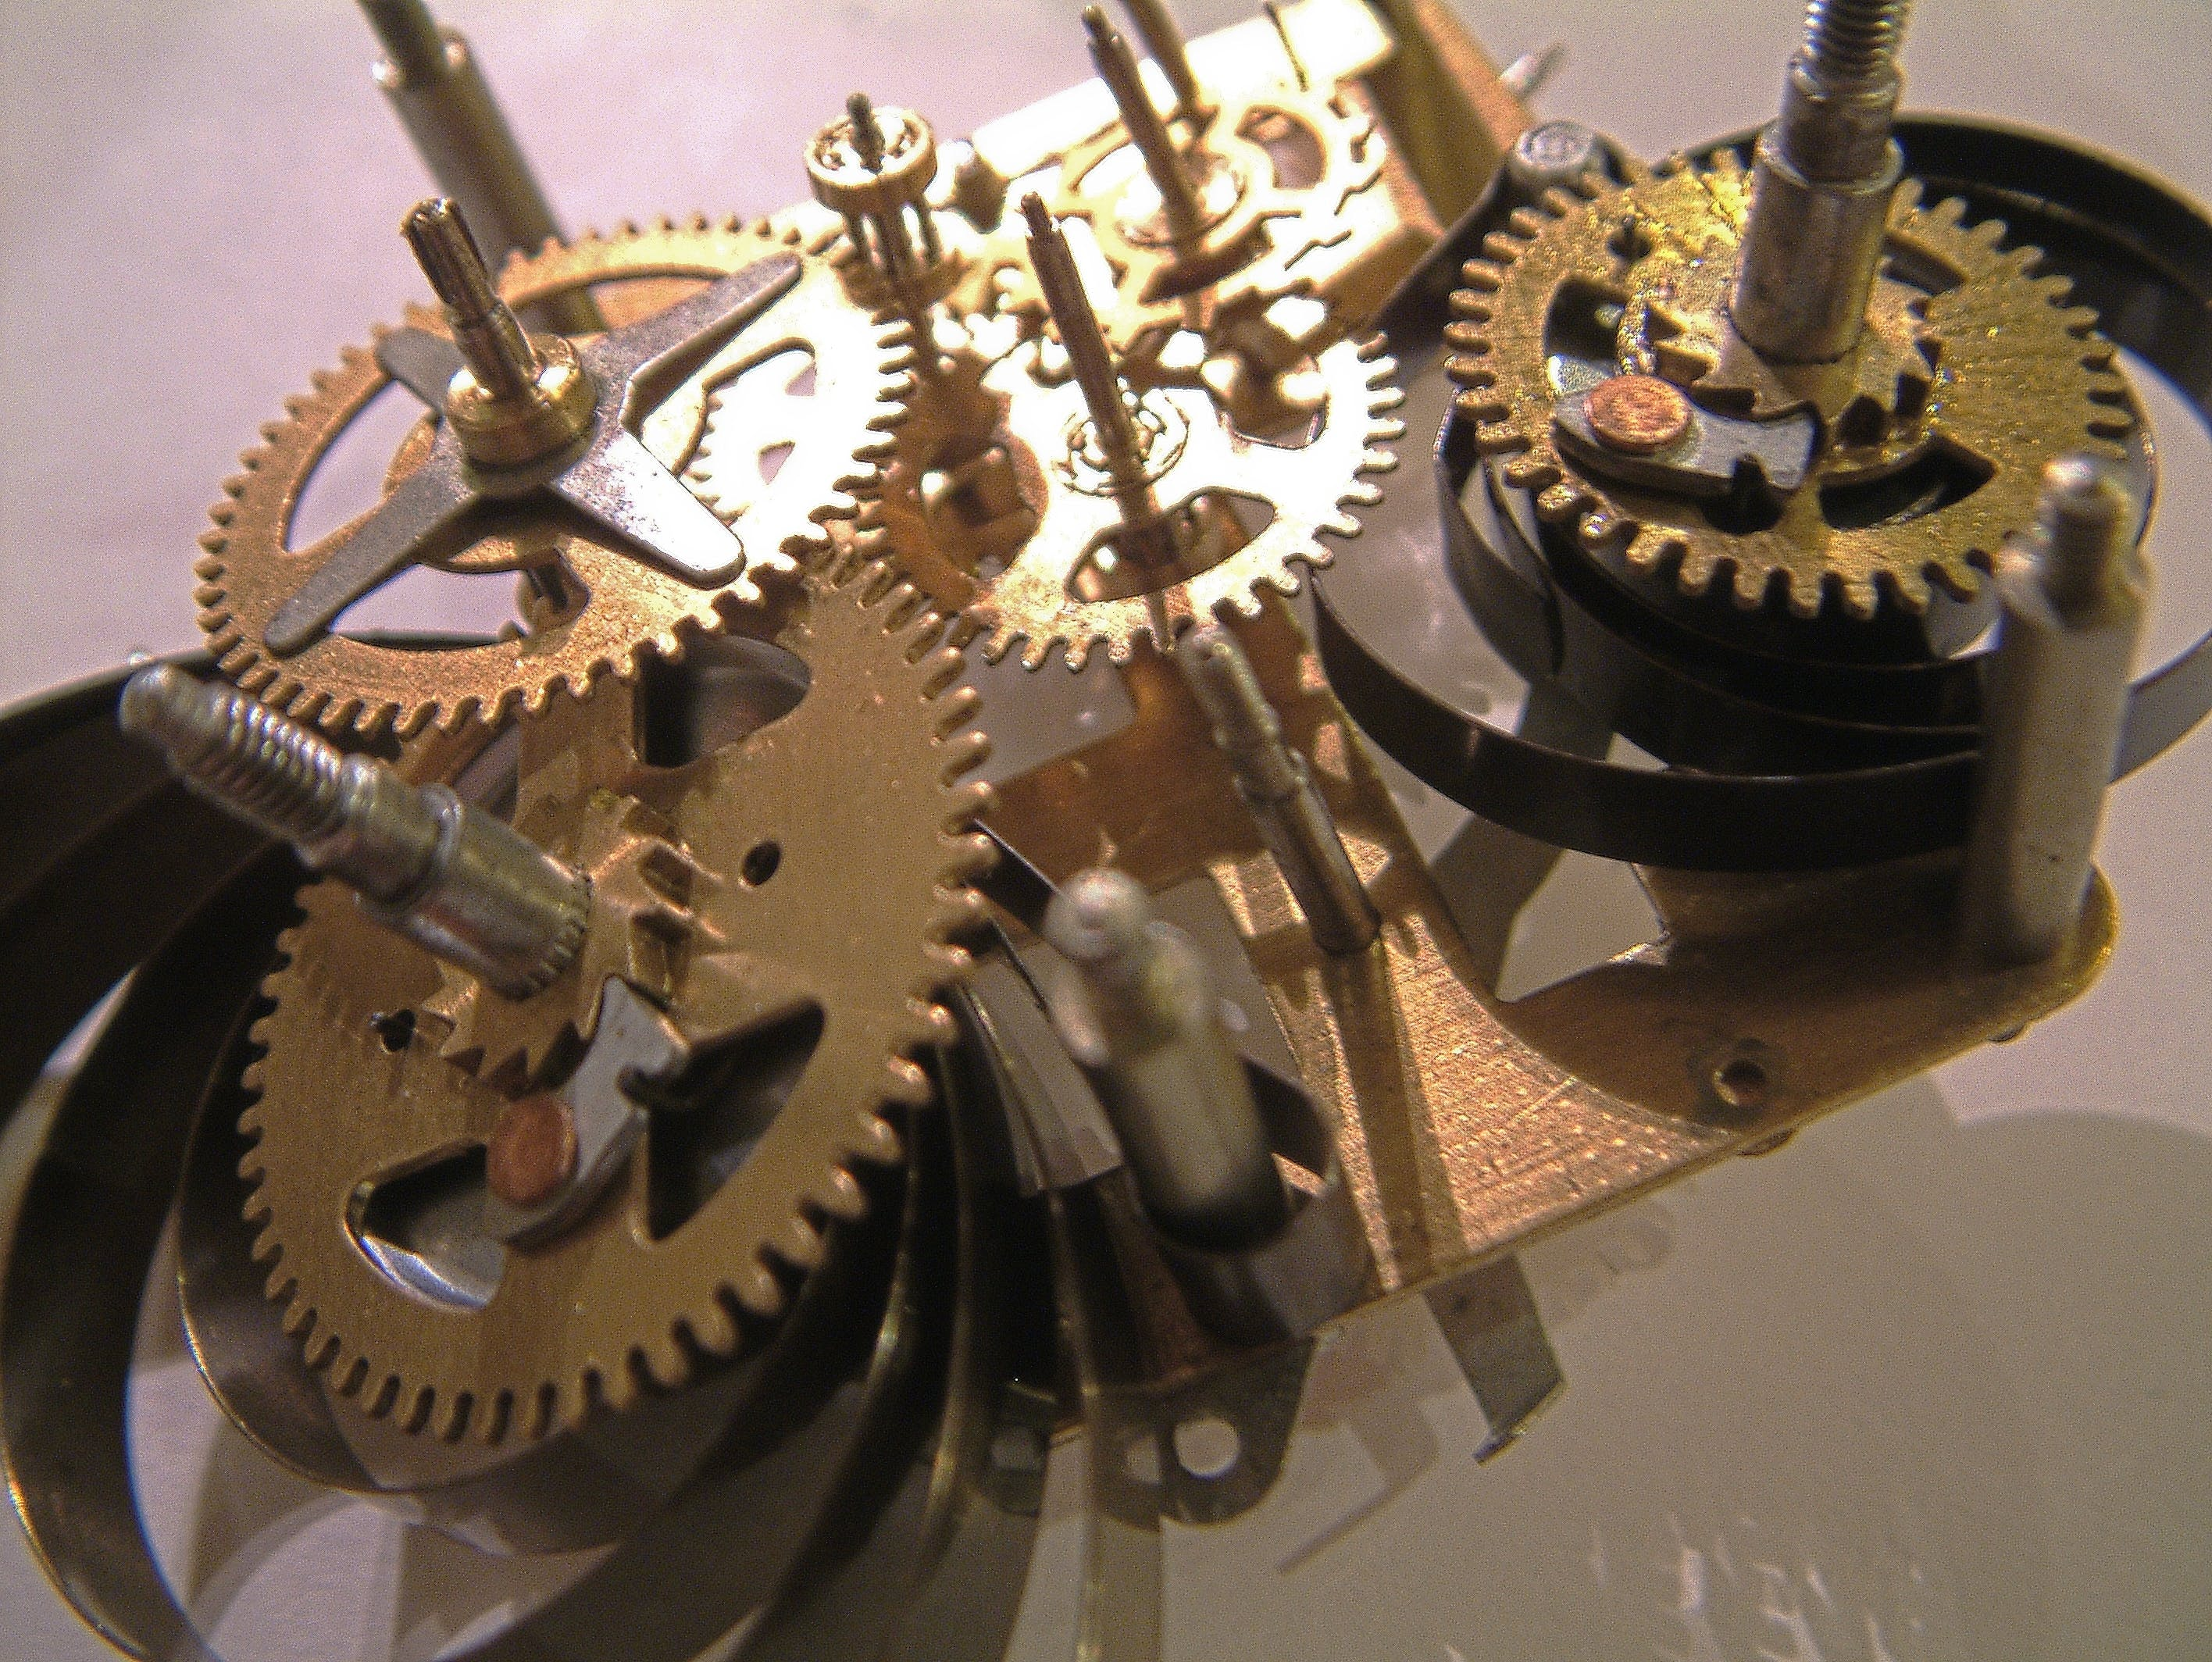 Free stock photo of alarm clock, clockwork, old clock, toothed wheels